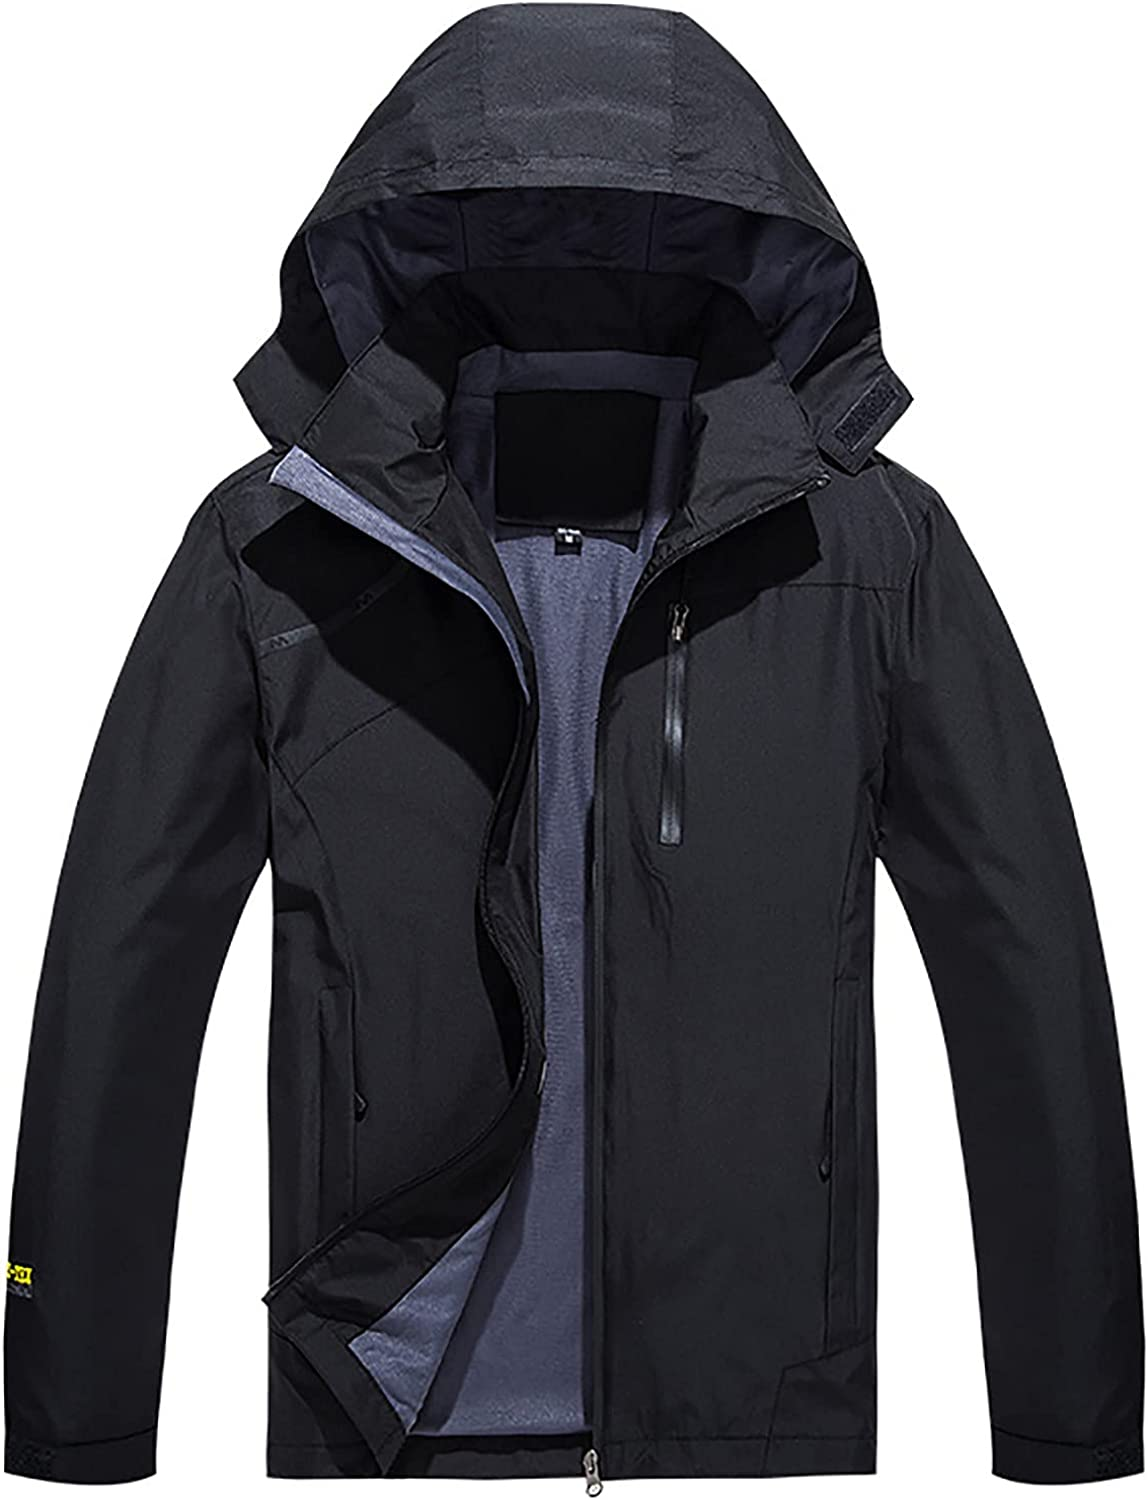 2021 Fashion Jacket for Men's Hooded Windbreaker Thin Jacket Casual Zipper Loose Plus Size Outdoor Sports Coat Trench